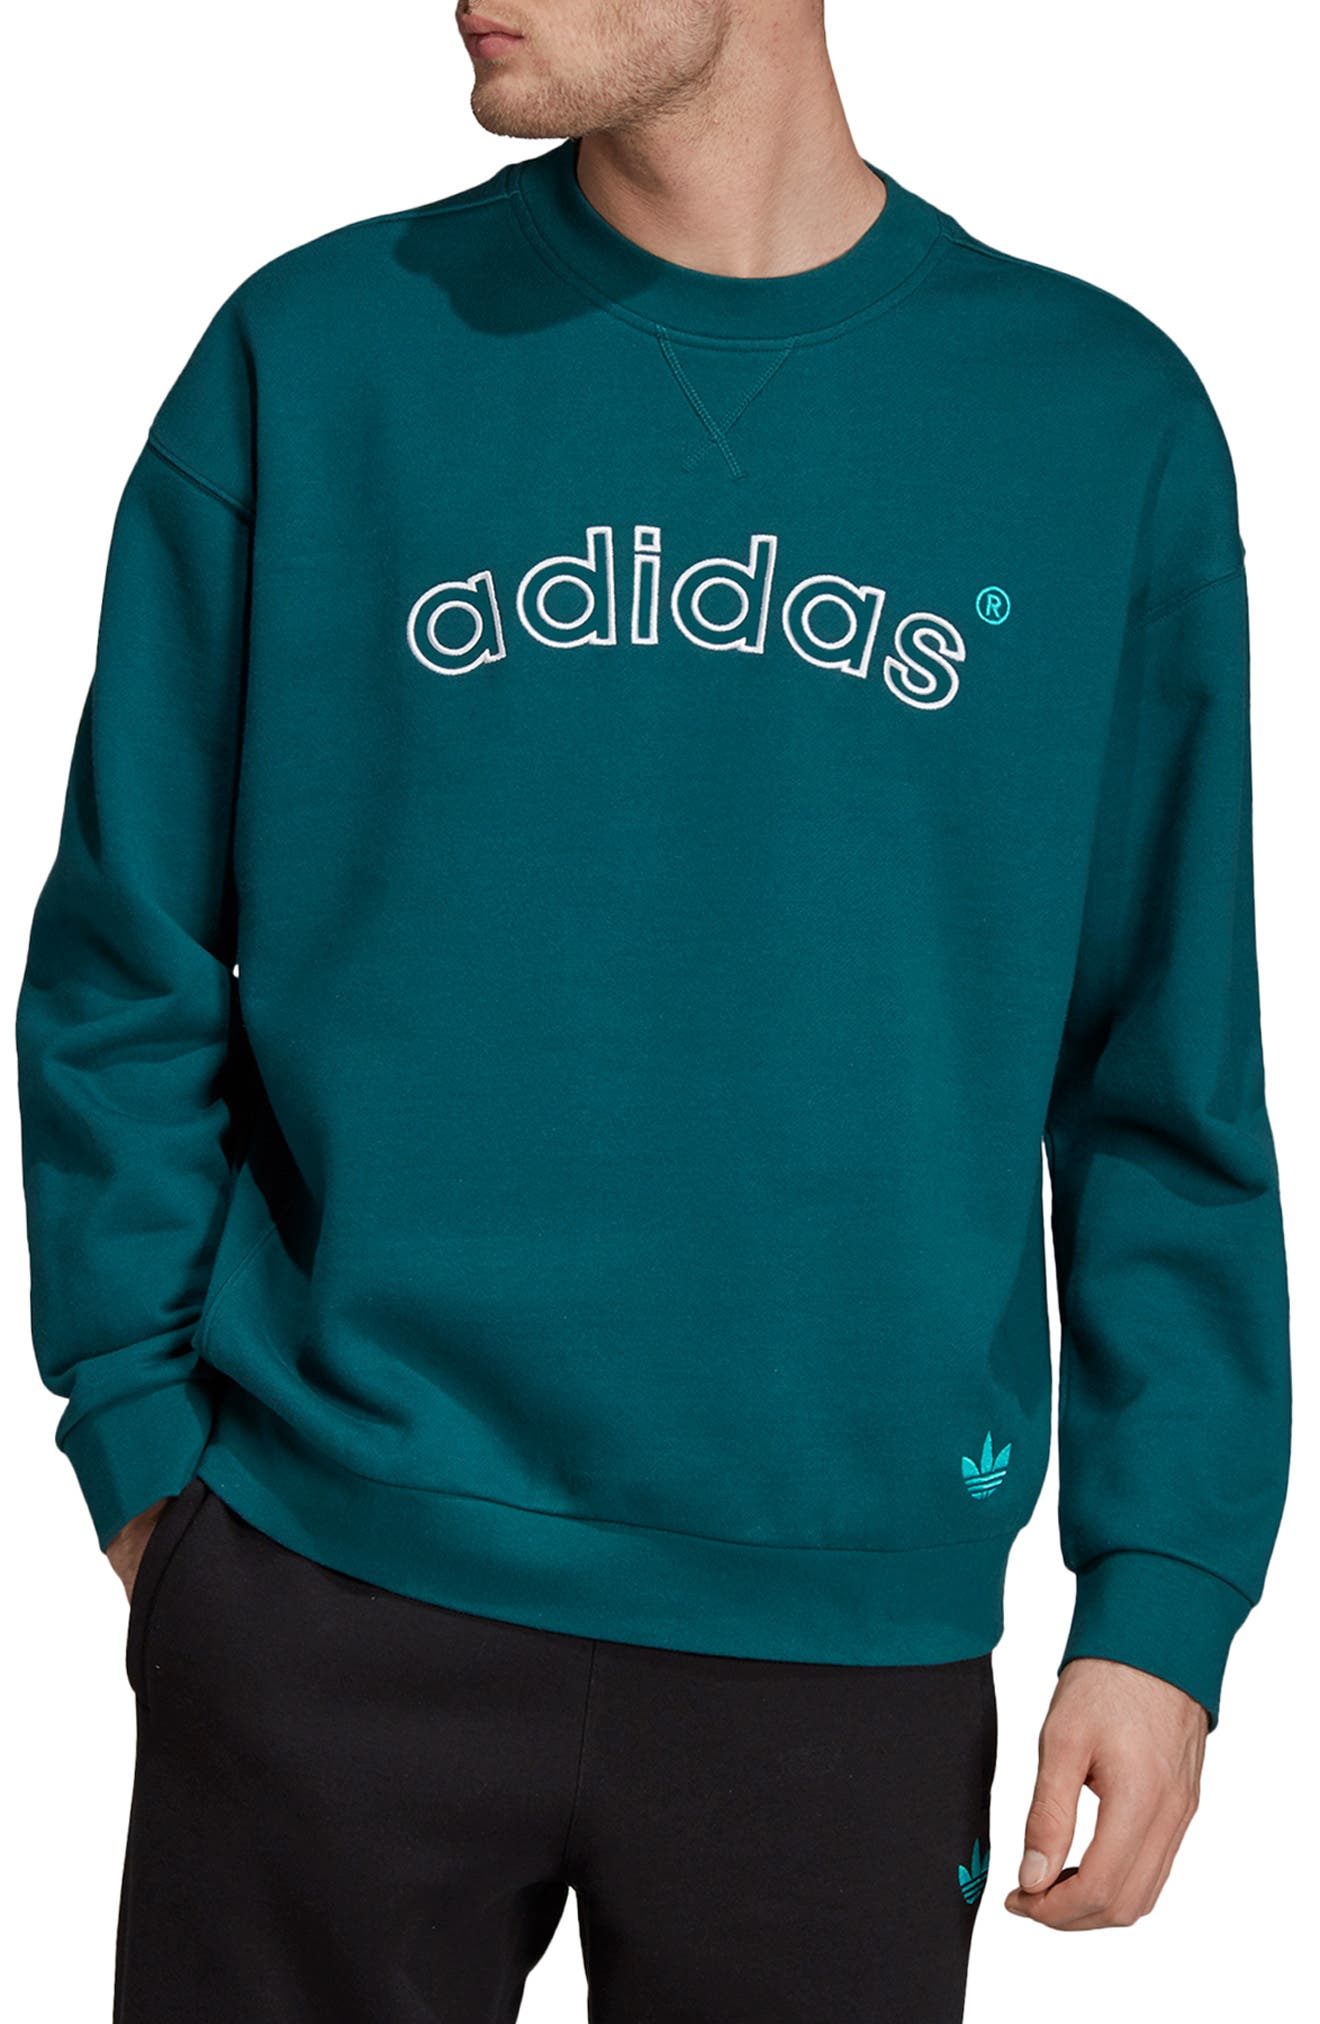 ADIDAS ORIGINALS, Arc Sweatshirt, Main thumbnail 1, color, RICH GREEN